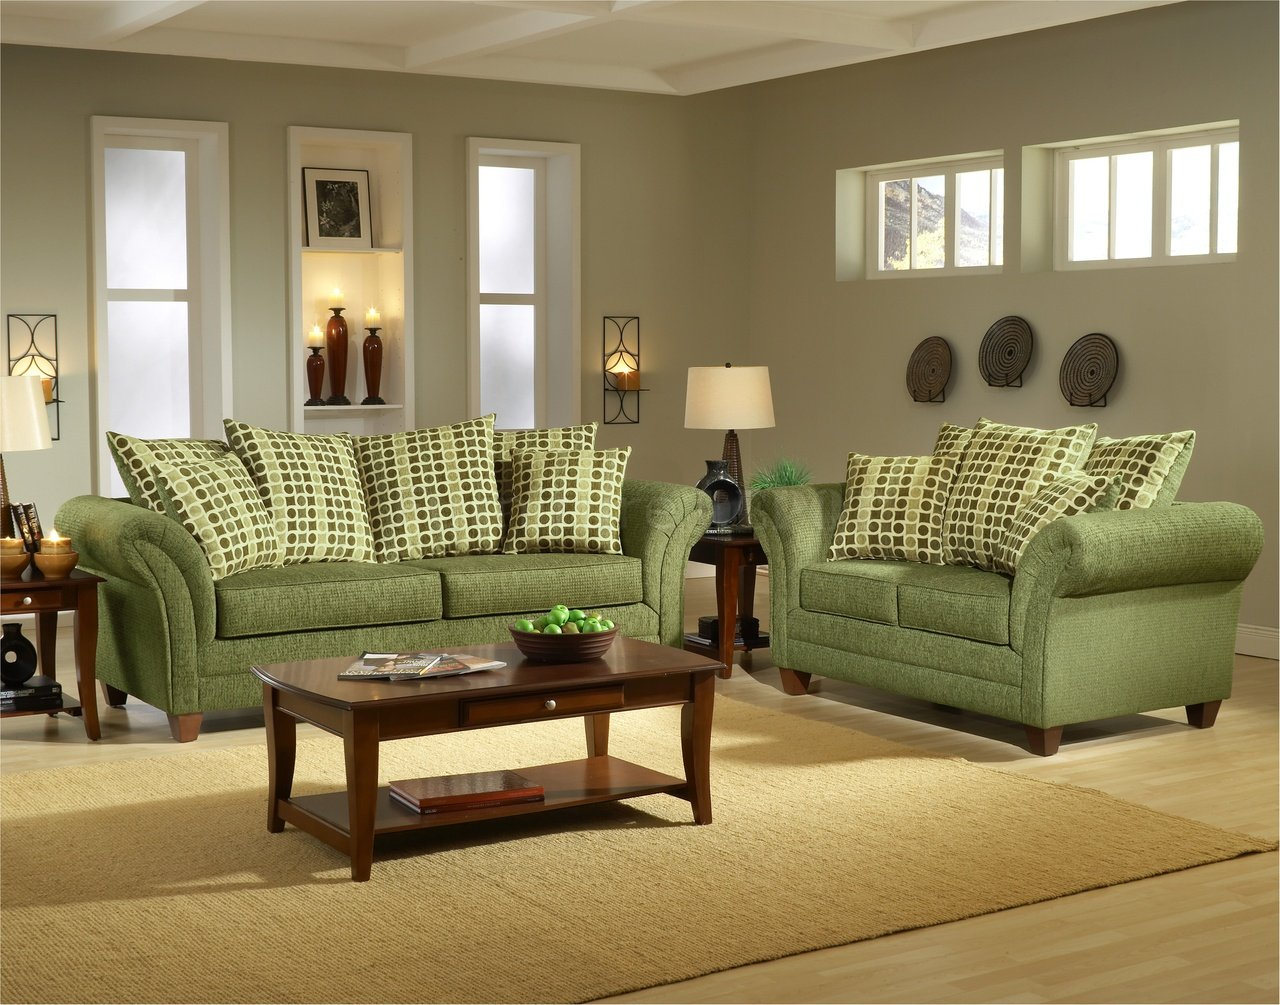 Green Sofas And Eco Friendly Furniture : Astonishing Modern Artistic Green Sofas Gray Interior Room Design